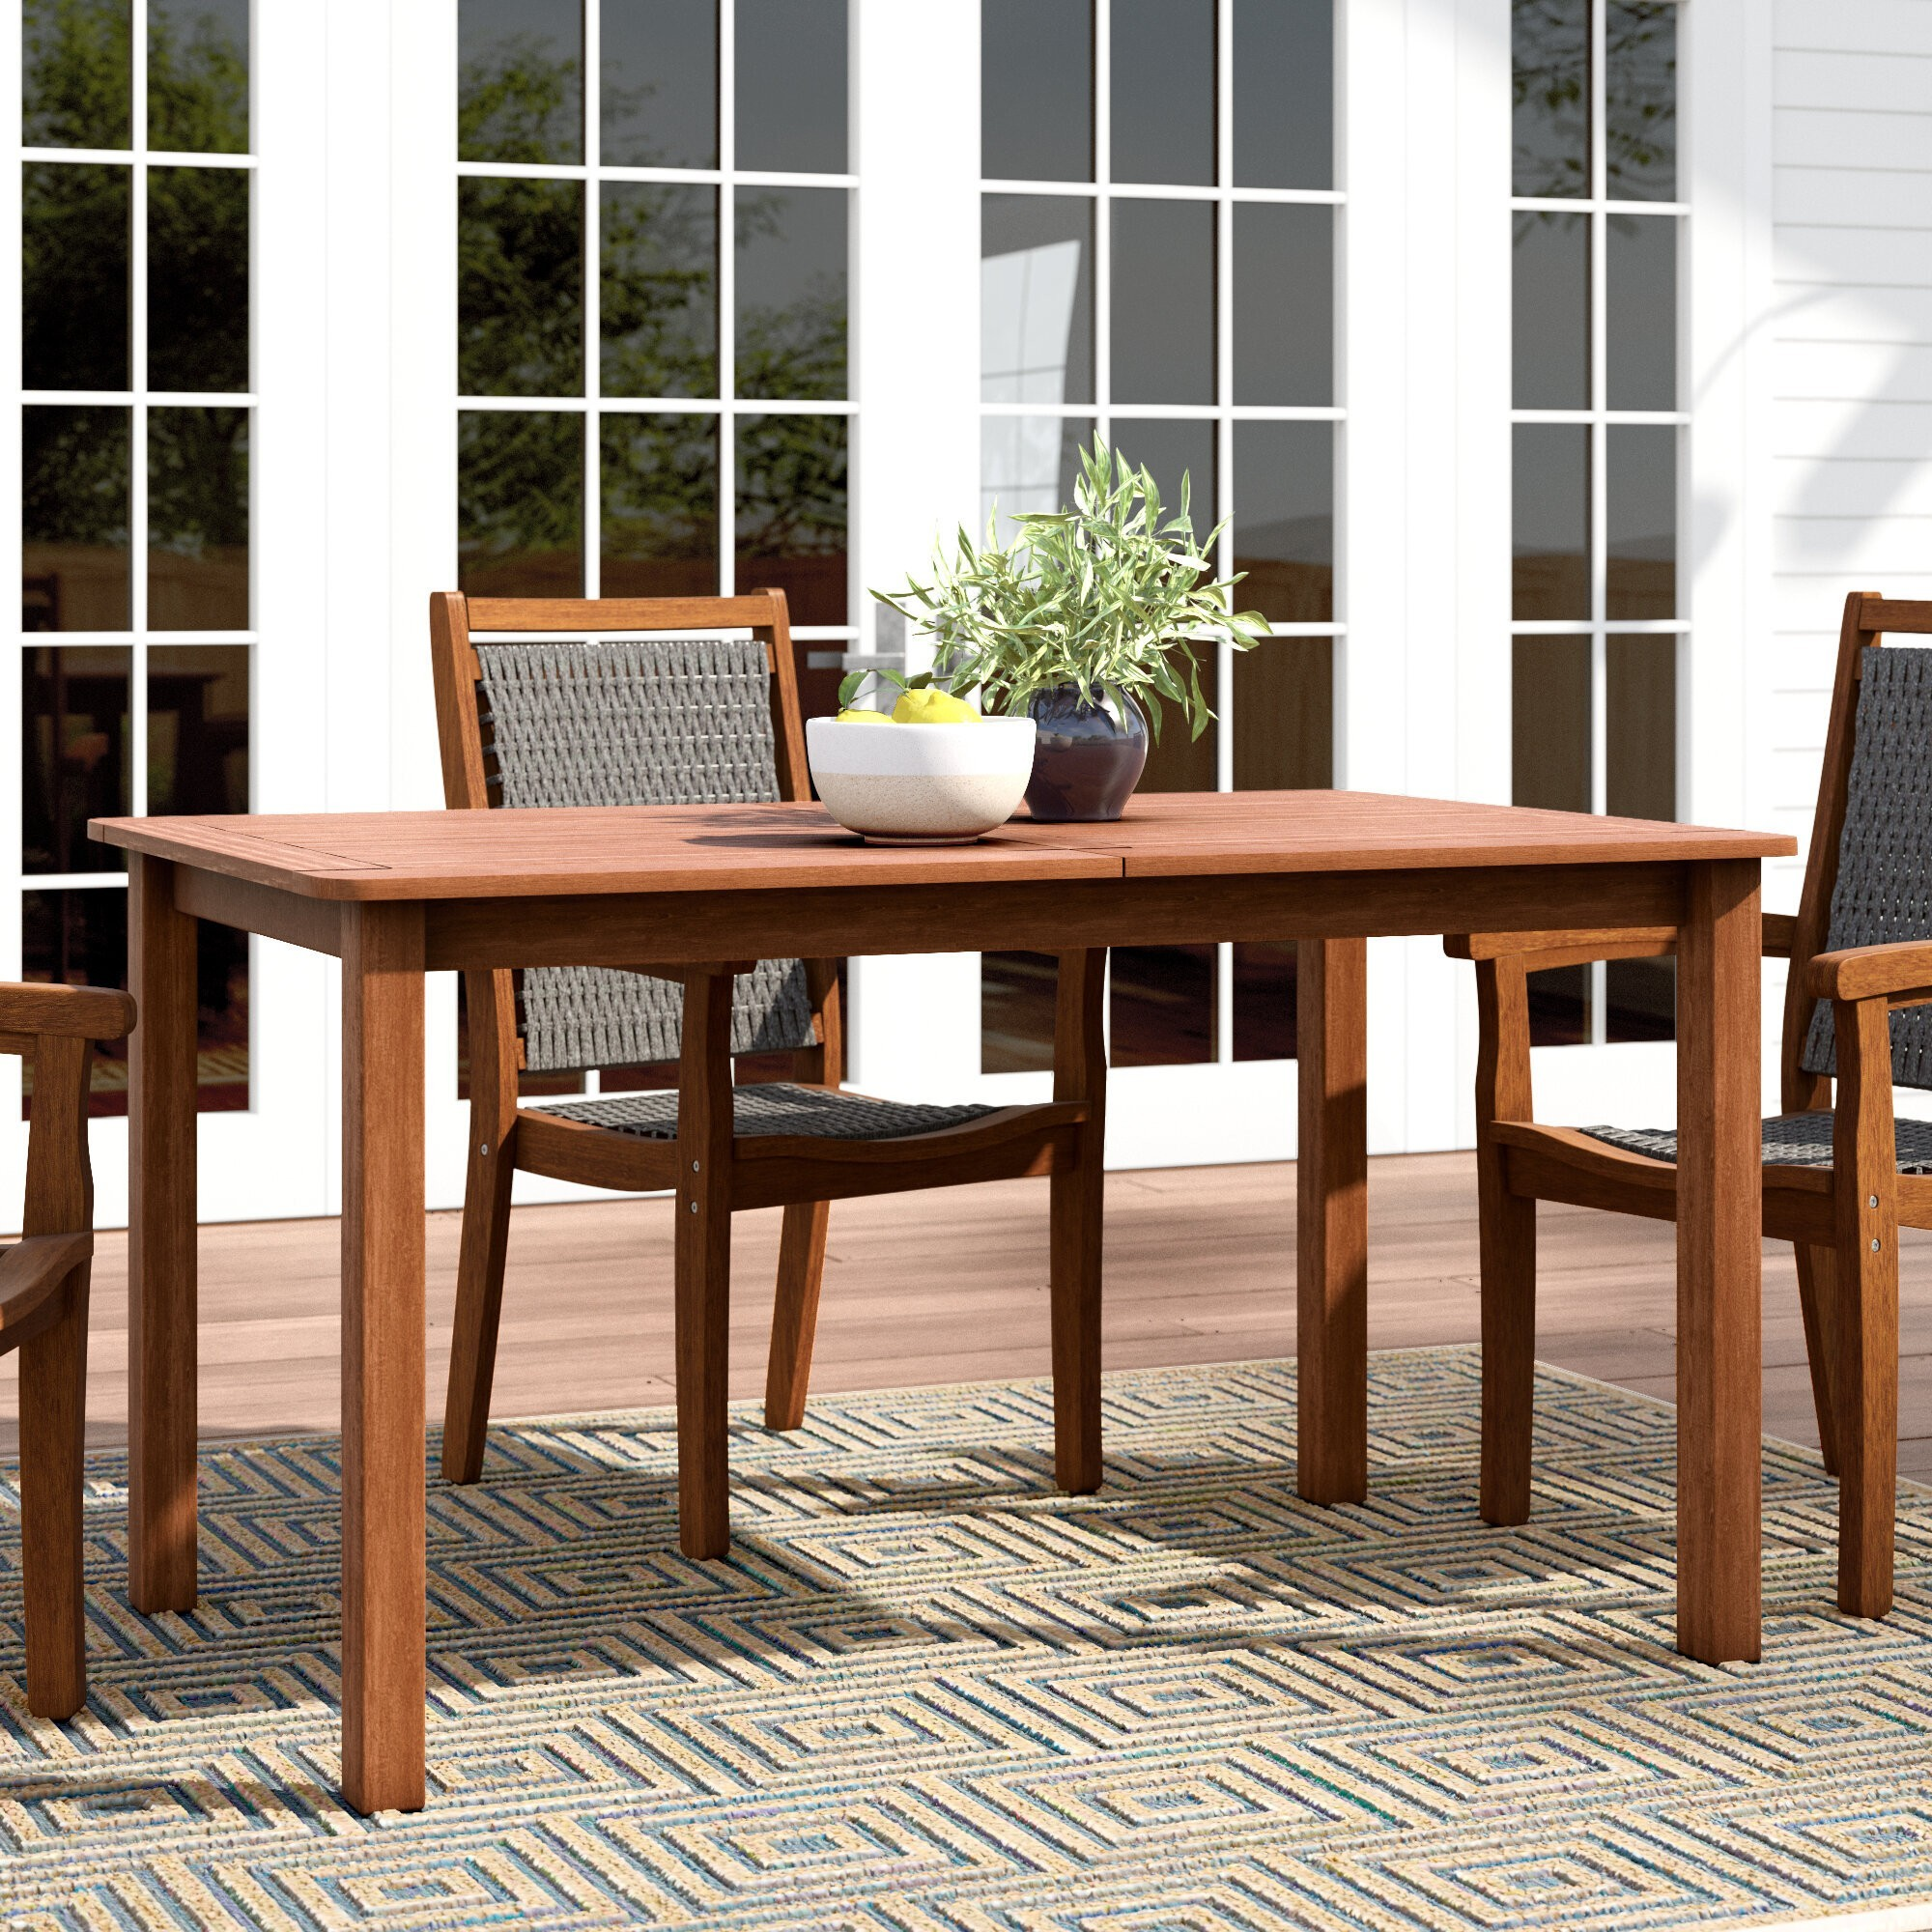 How To Choose A Patio Dining Table